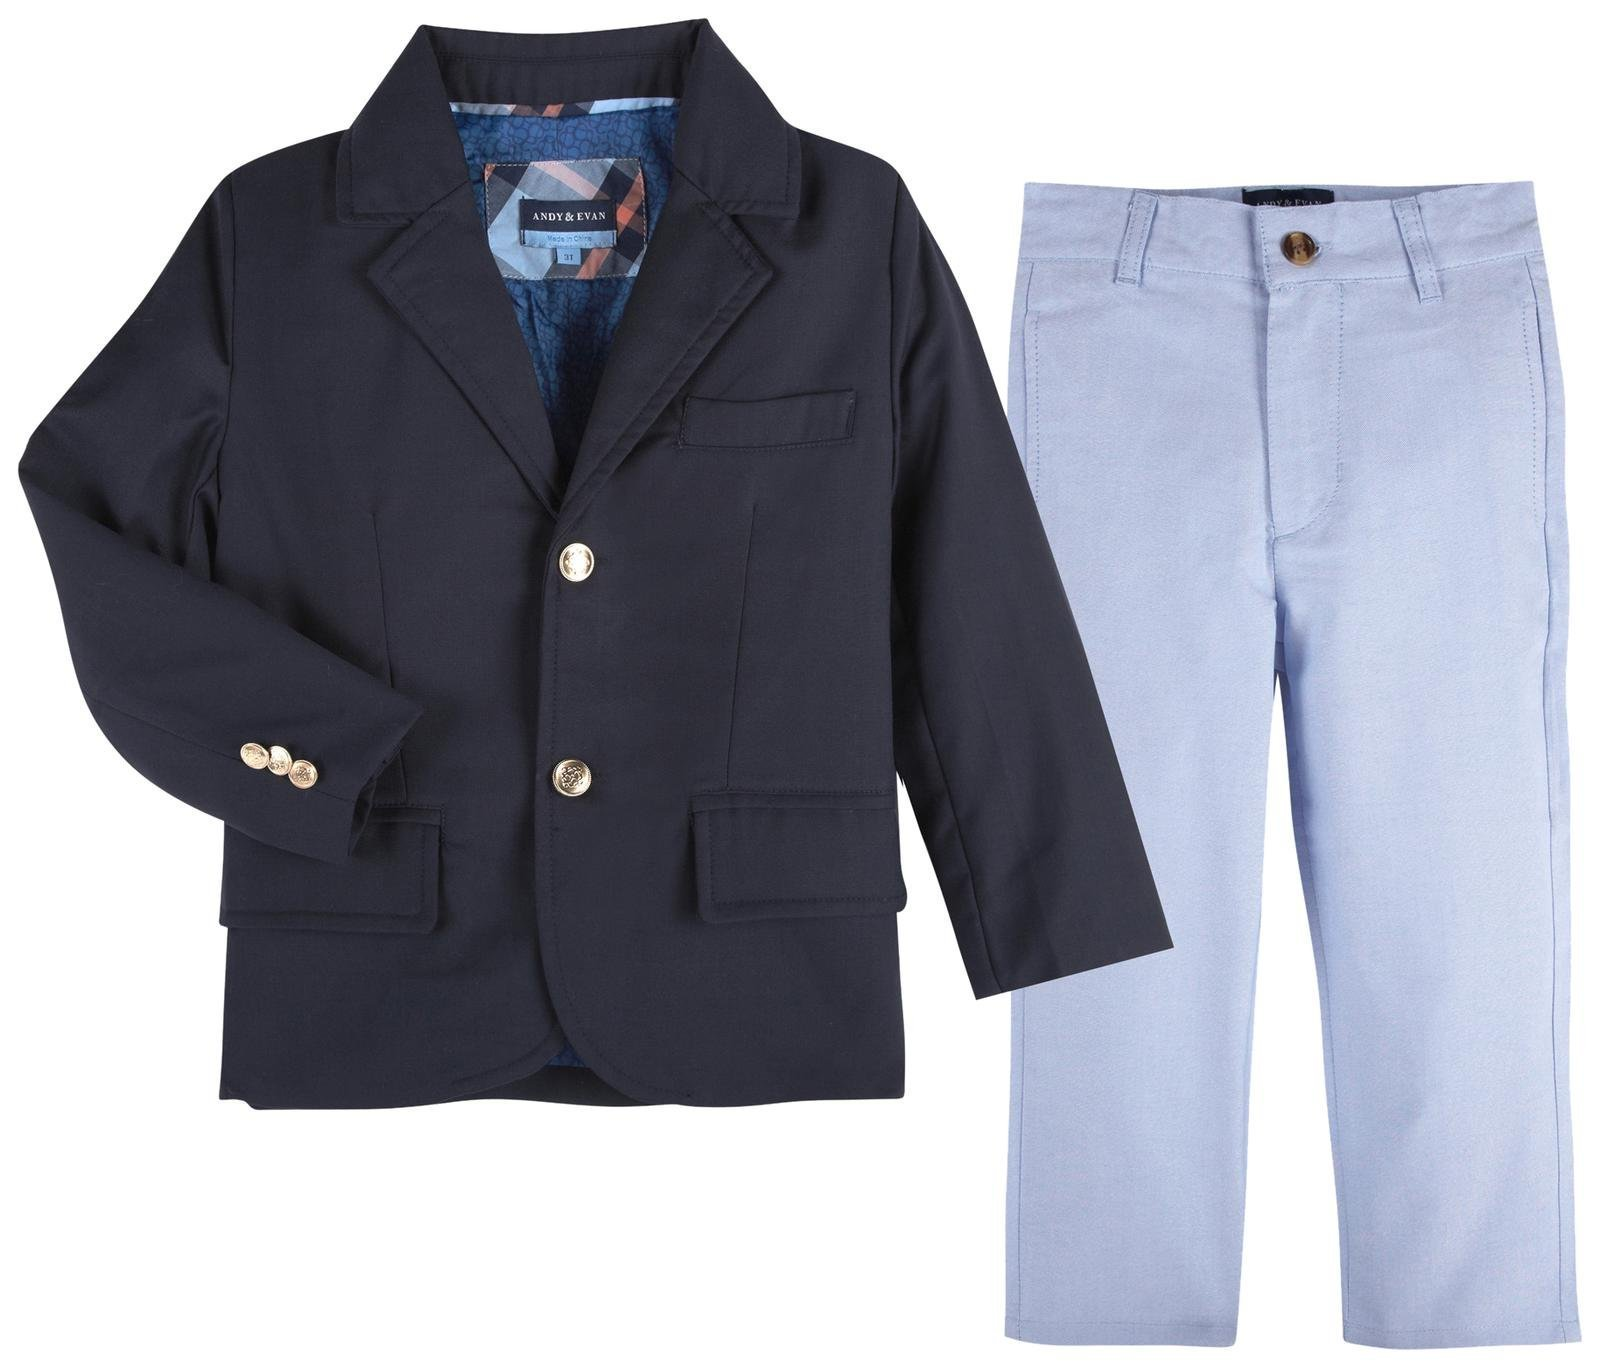 Andy & Evan Boys' Twill Blazer and Oxford Pant Set-Toddler, Navy, 4T